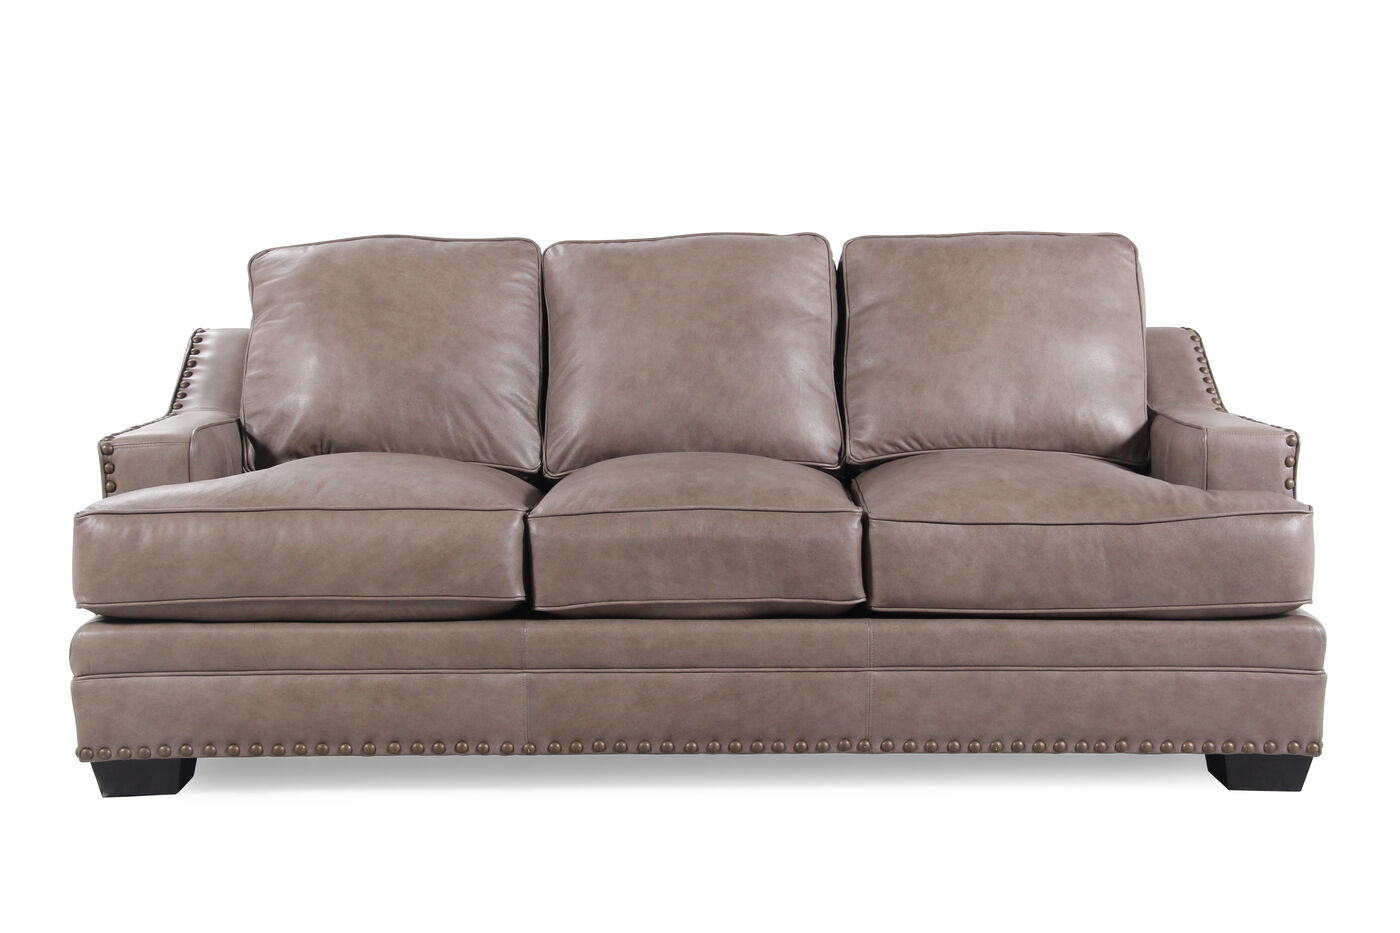 Broyhill Estes Park Leather Sofa Mathis Brothers Furniture